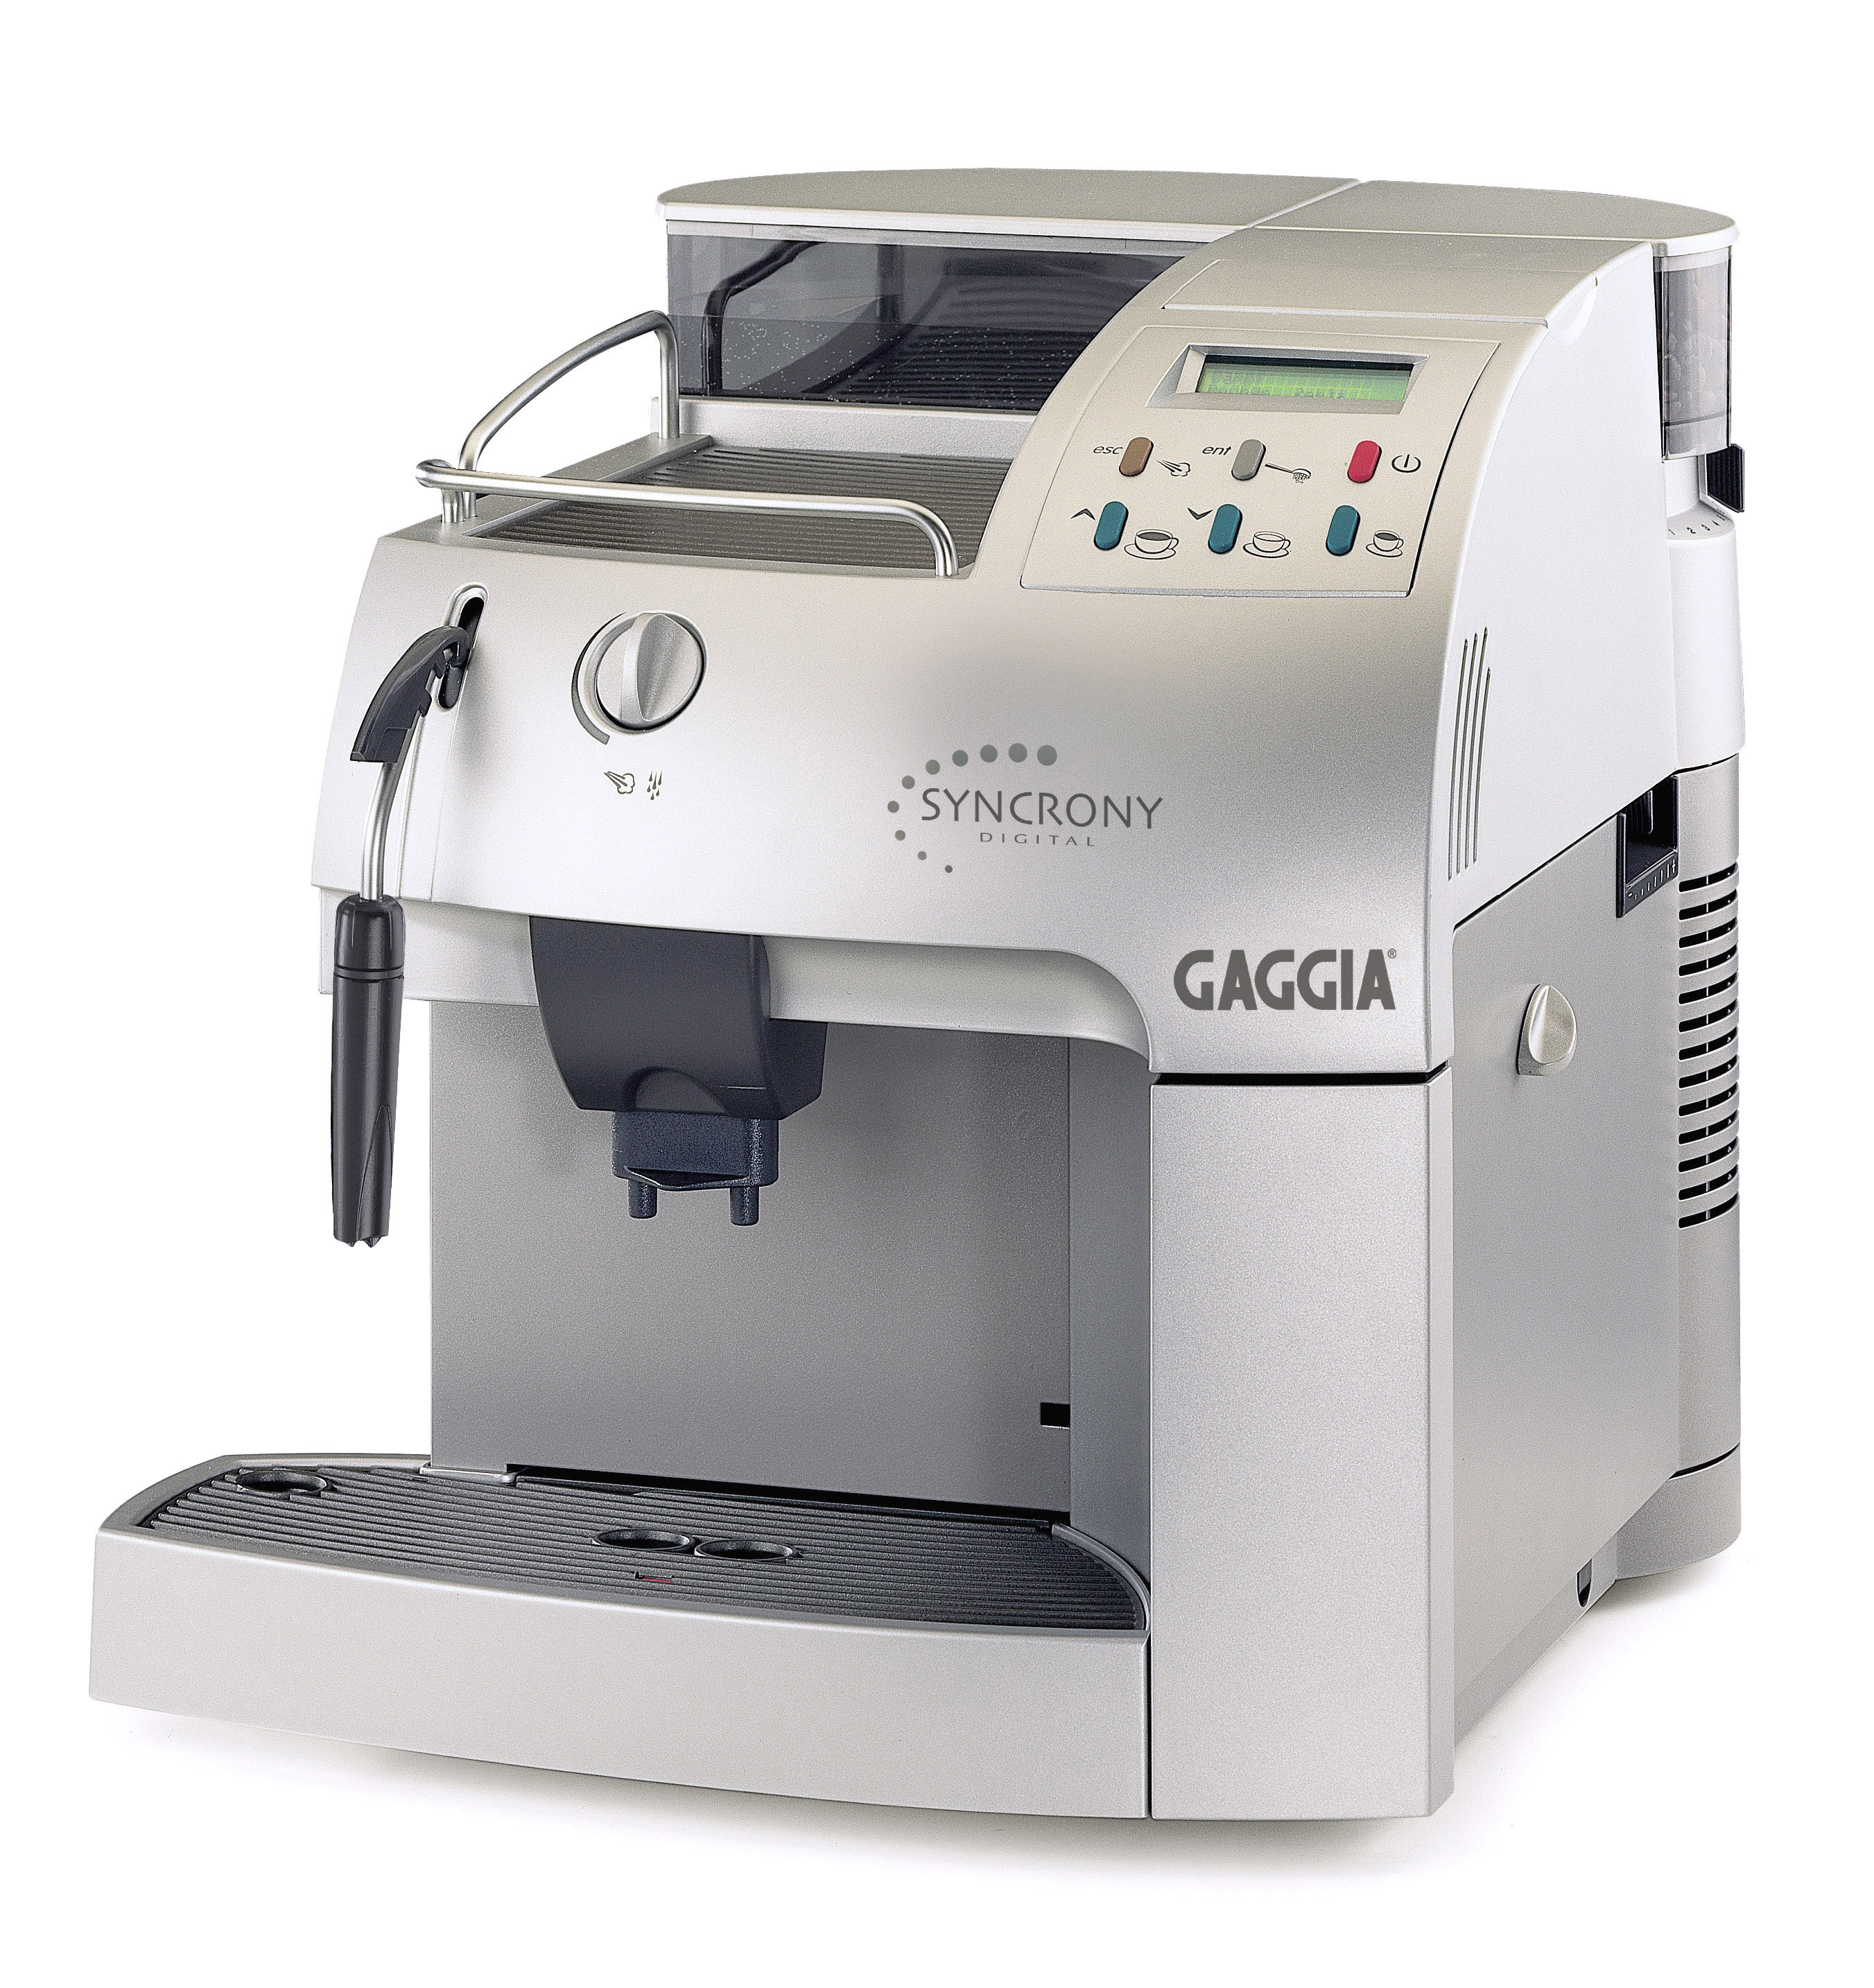 Gaggia Syncrony Digital USD 899 Coffee Grinders Coffee Roasters Espresso Makers Coffee Gift Pack